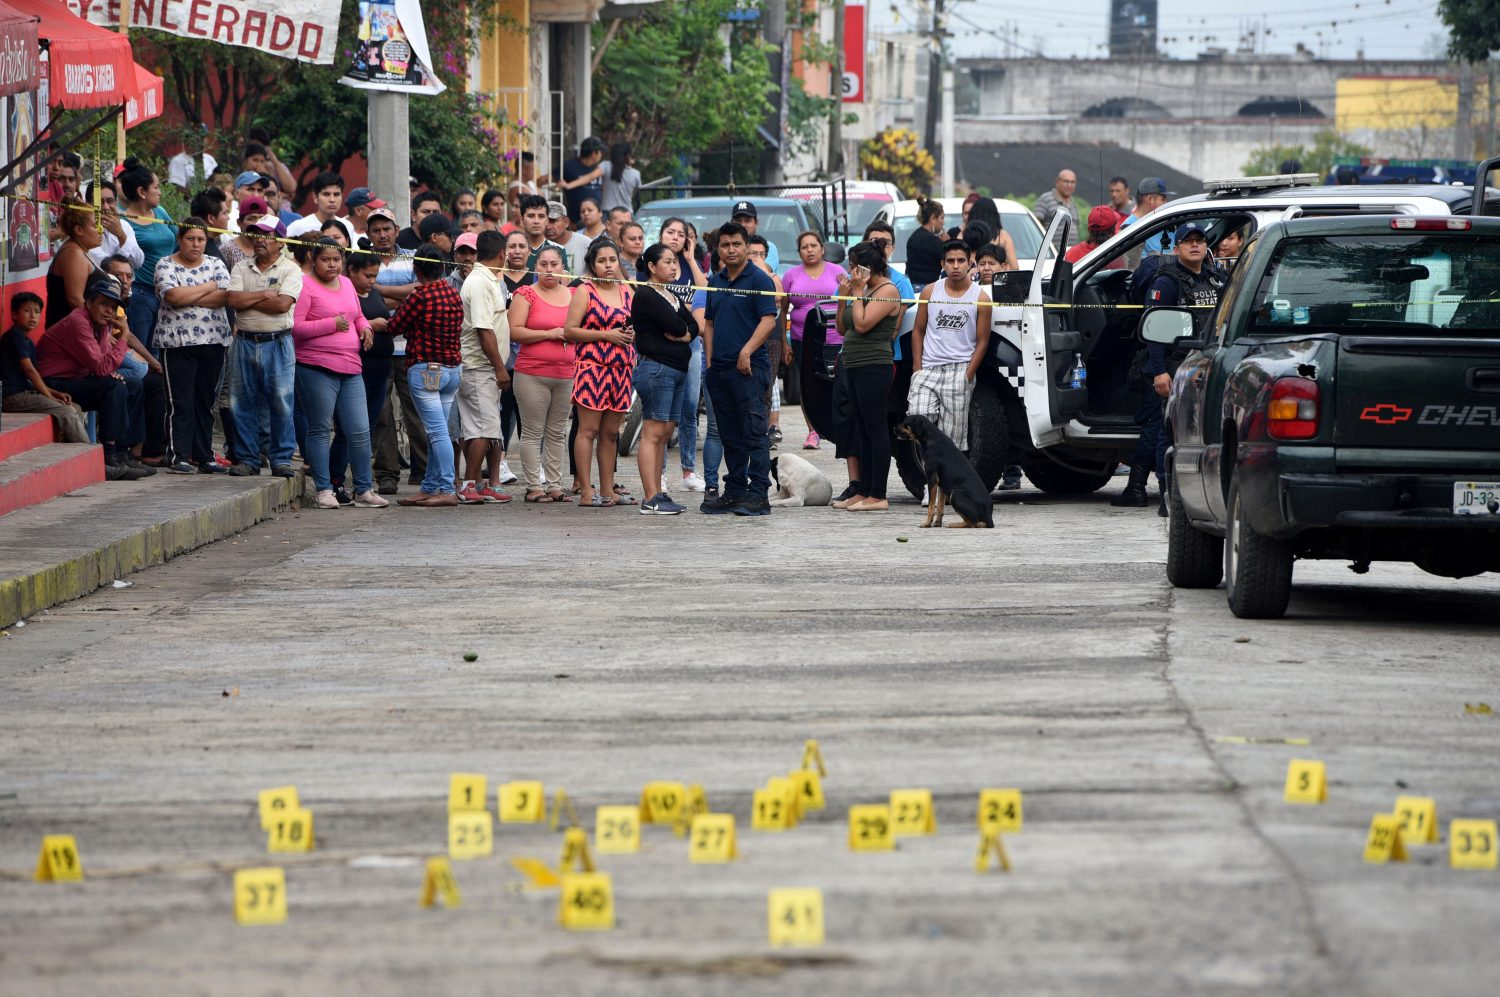 FILE PHOTO: People stand near bullet casings on the ground at a crime scene after a shootout in the municipality of Tuzamapan, in the Mexican state of Veracruz, Mexico, May 16, 2019. REUTERS/Yahir Ceballos/File Photo